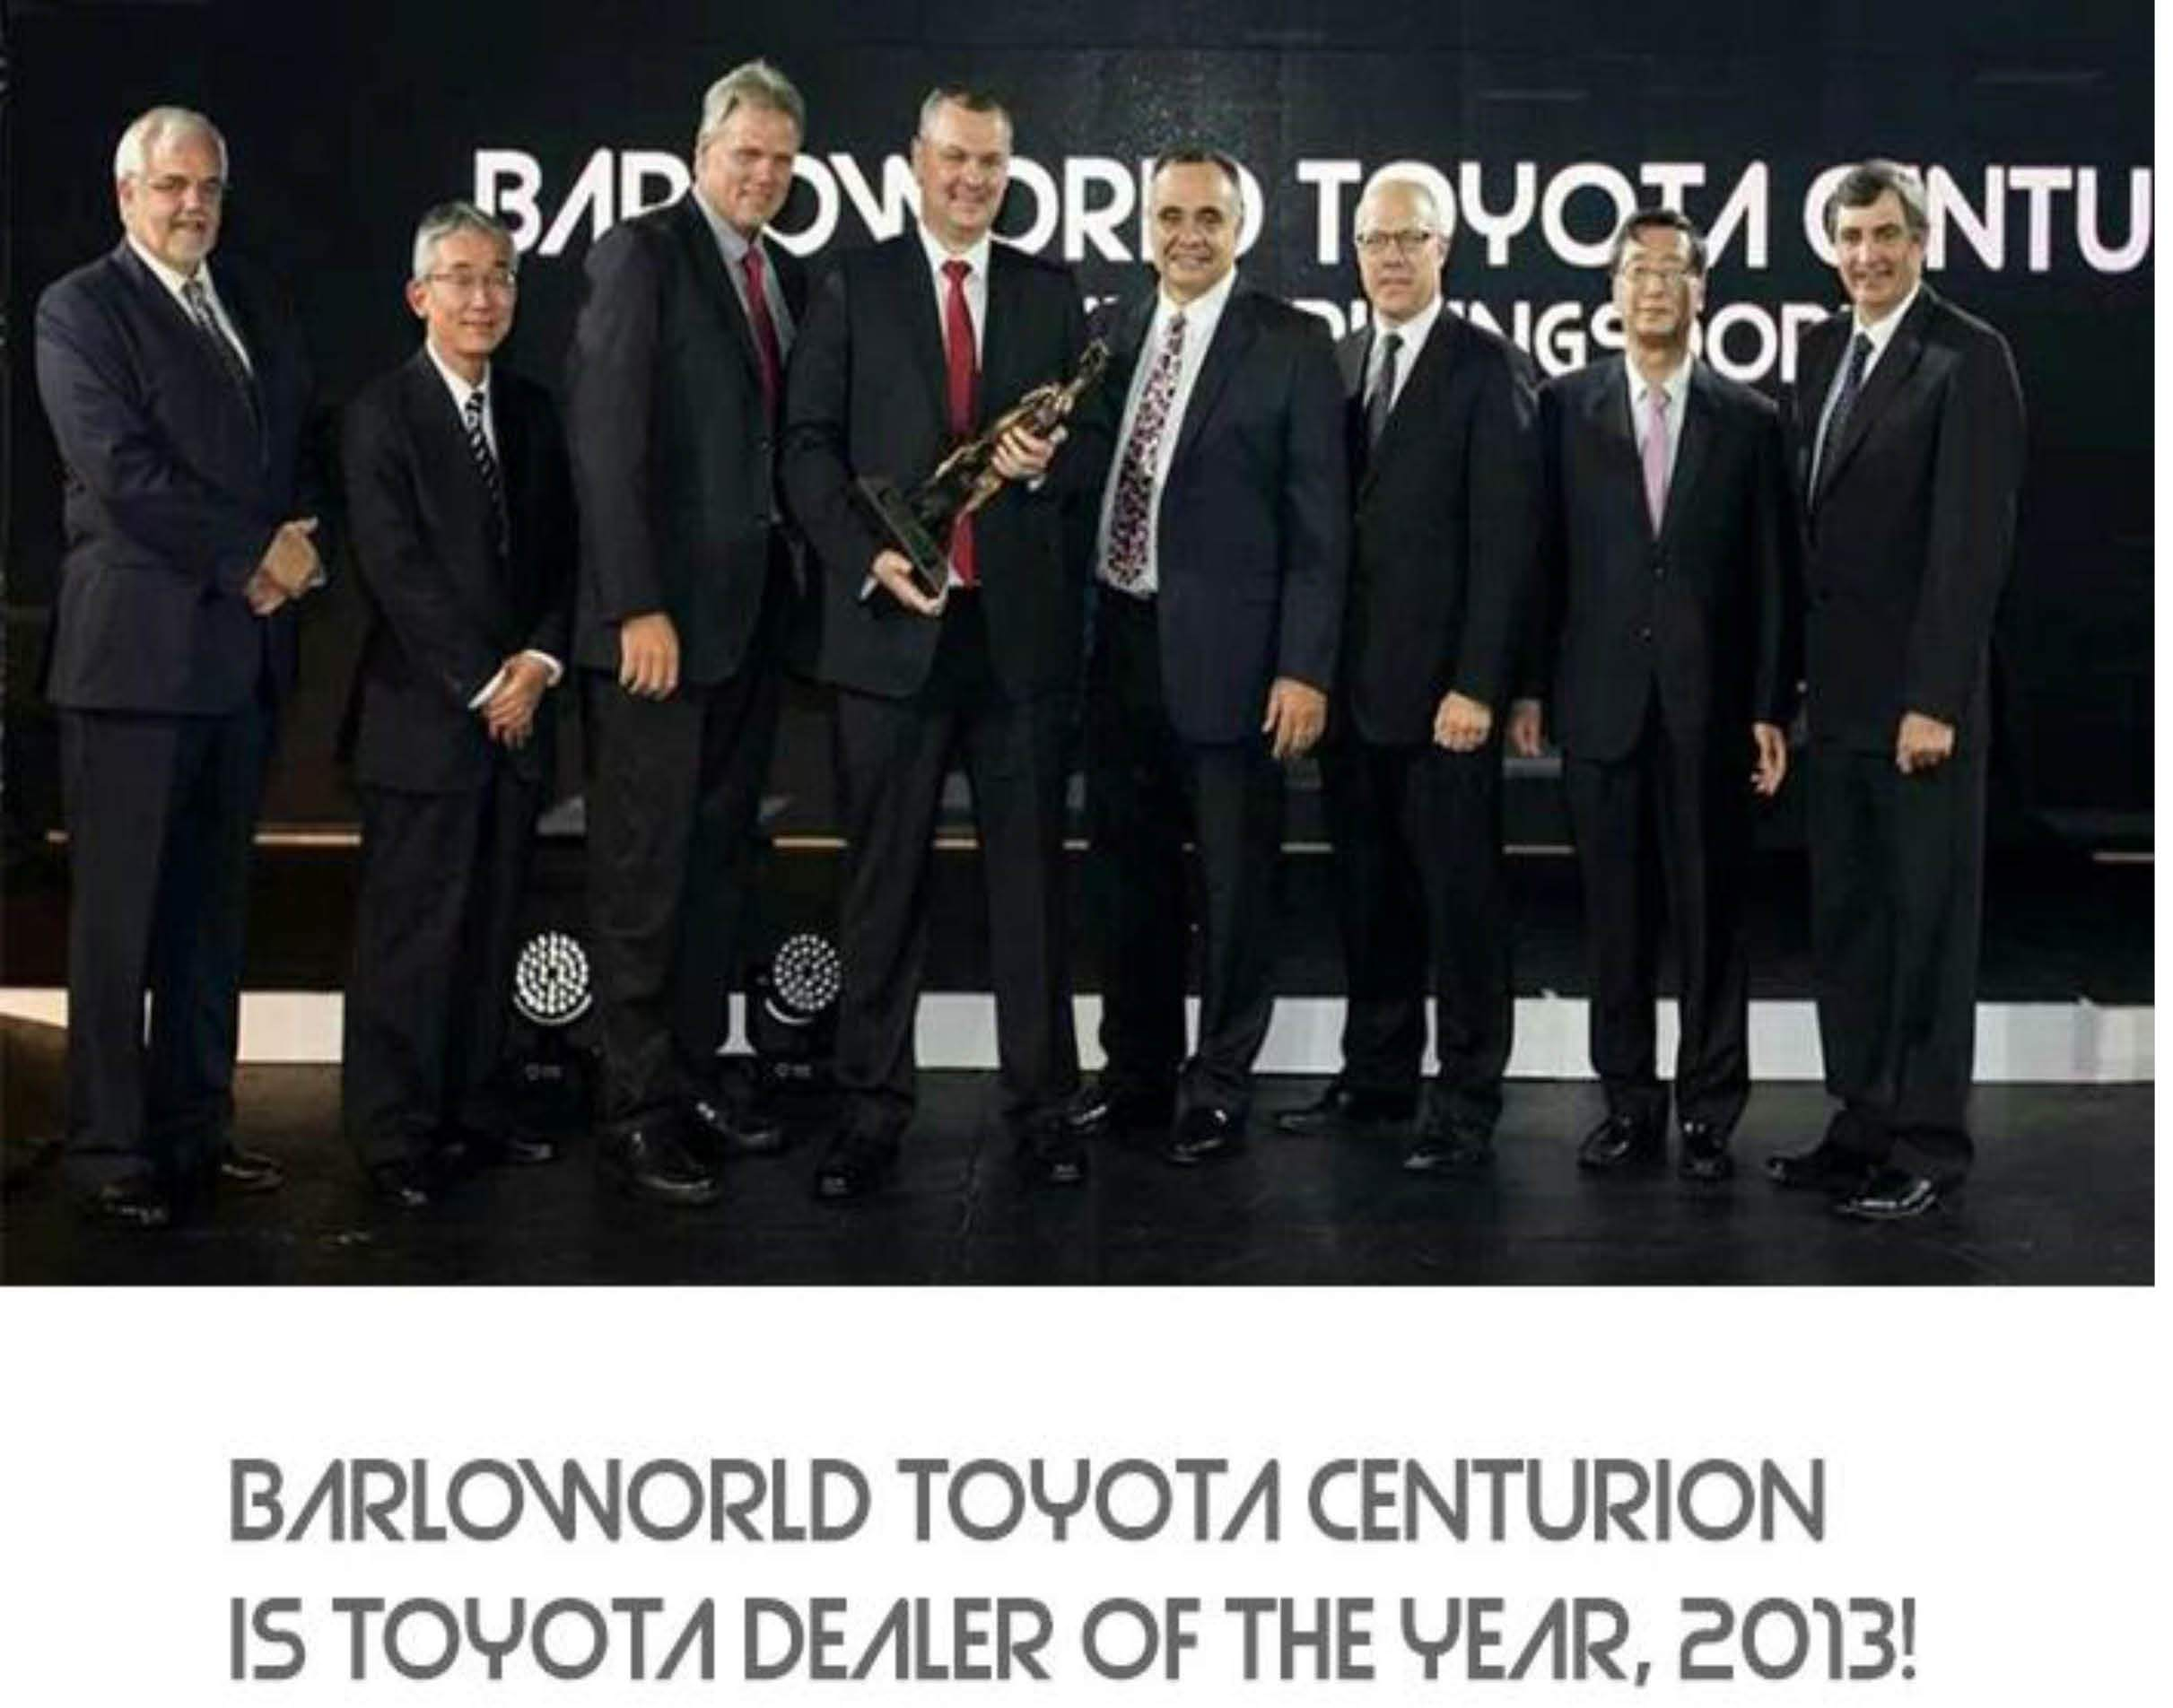 Barloworld Toyota Centurion Dealer of the year